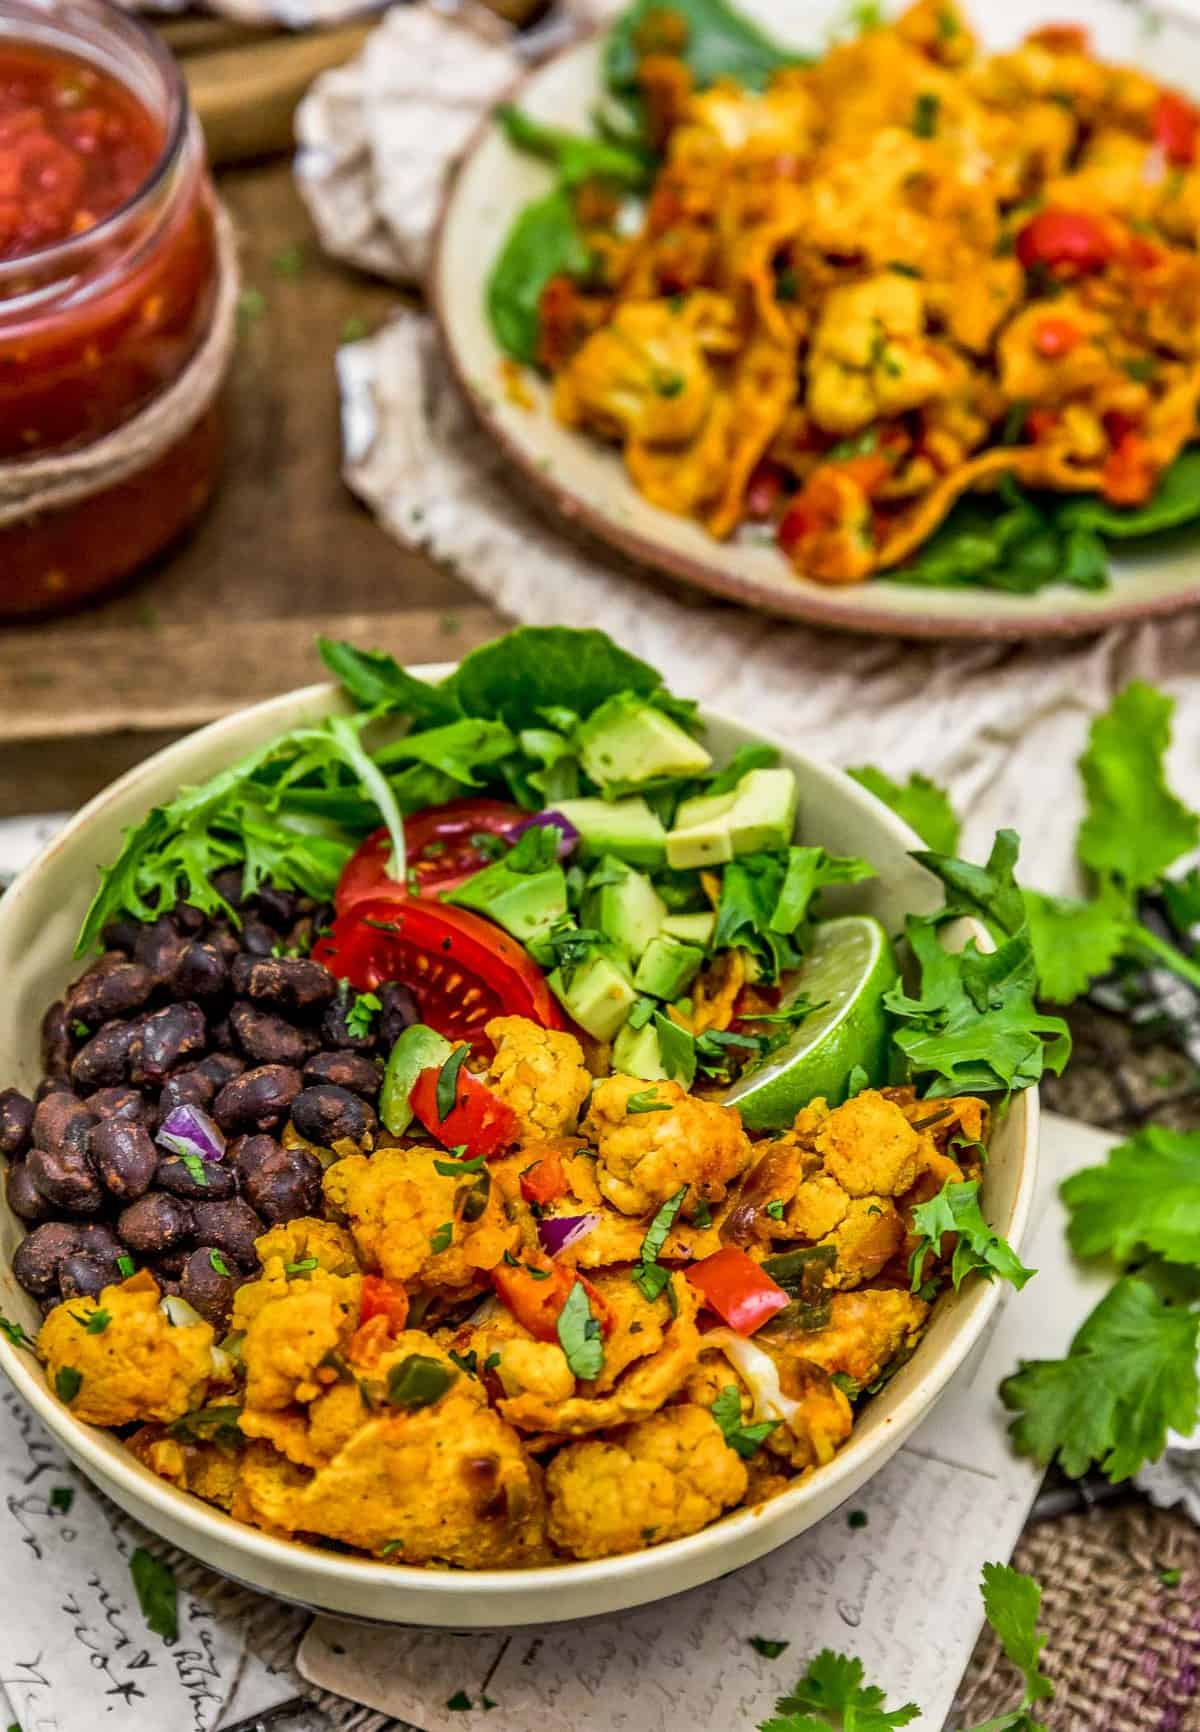 Buddha bowl of Vegan Cauliflower Migas